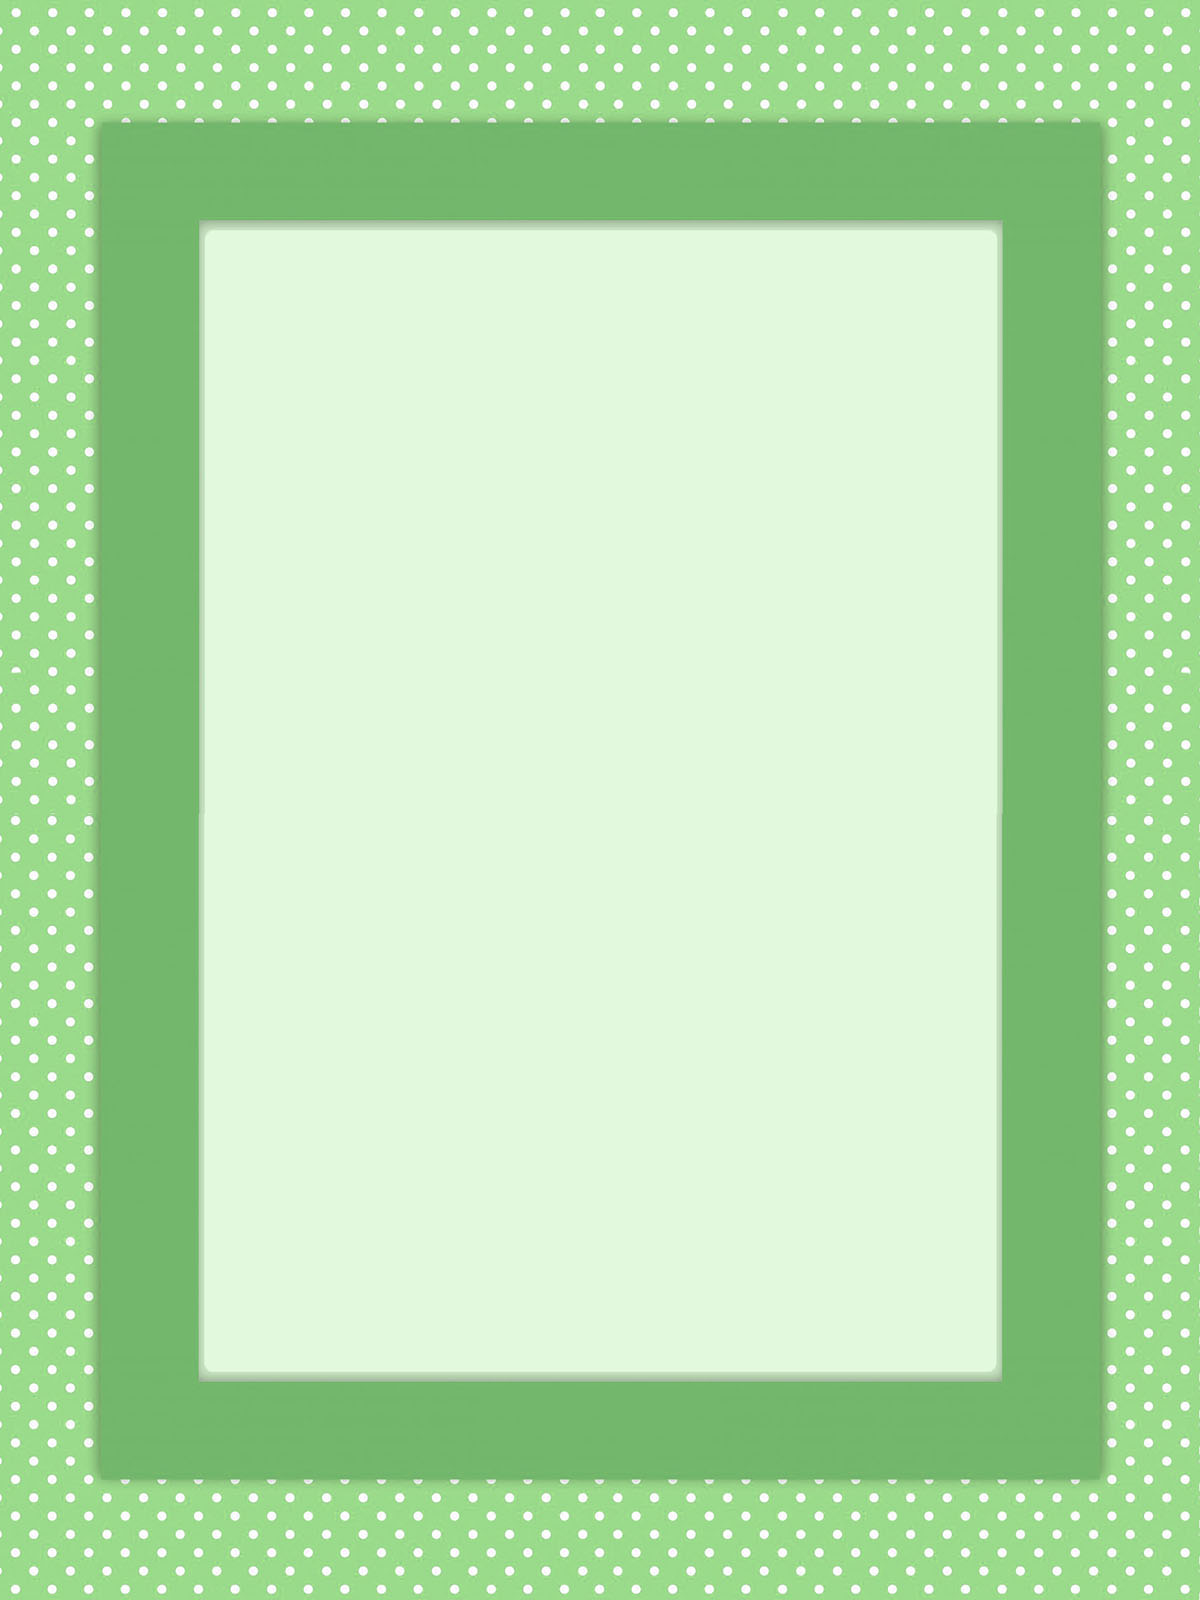 green spotted frame